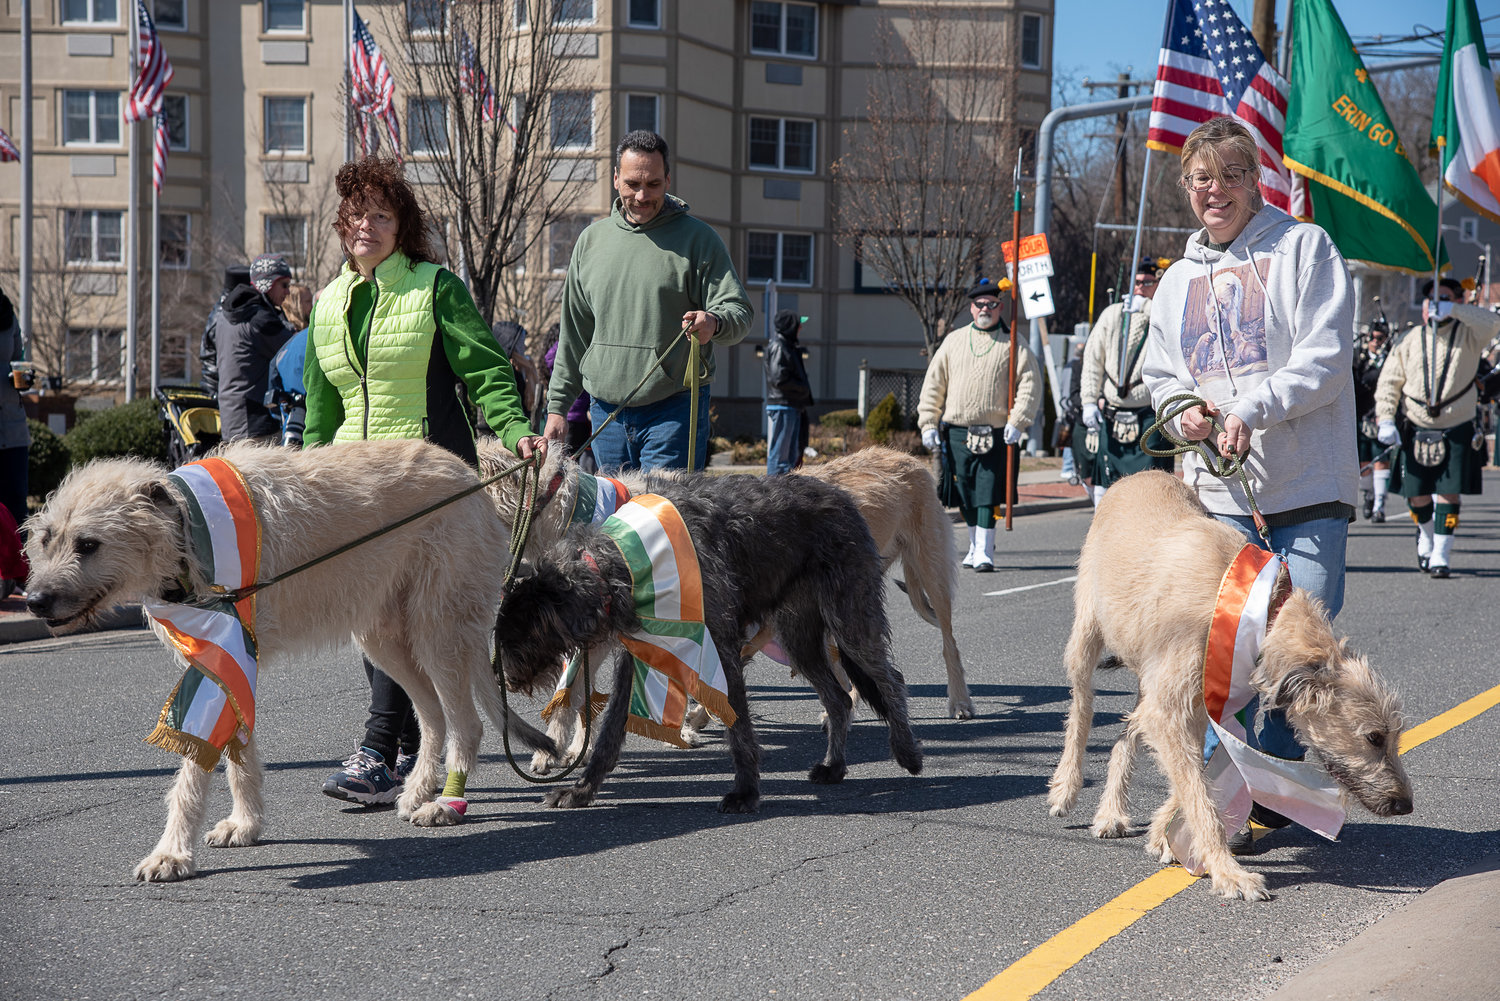 Janice Preisz, left, brought along Irish Wolfhounds to take part in the parade.